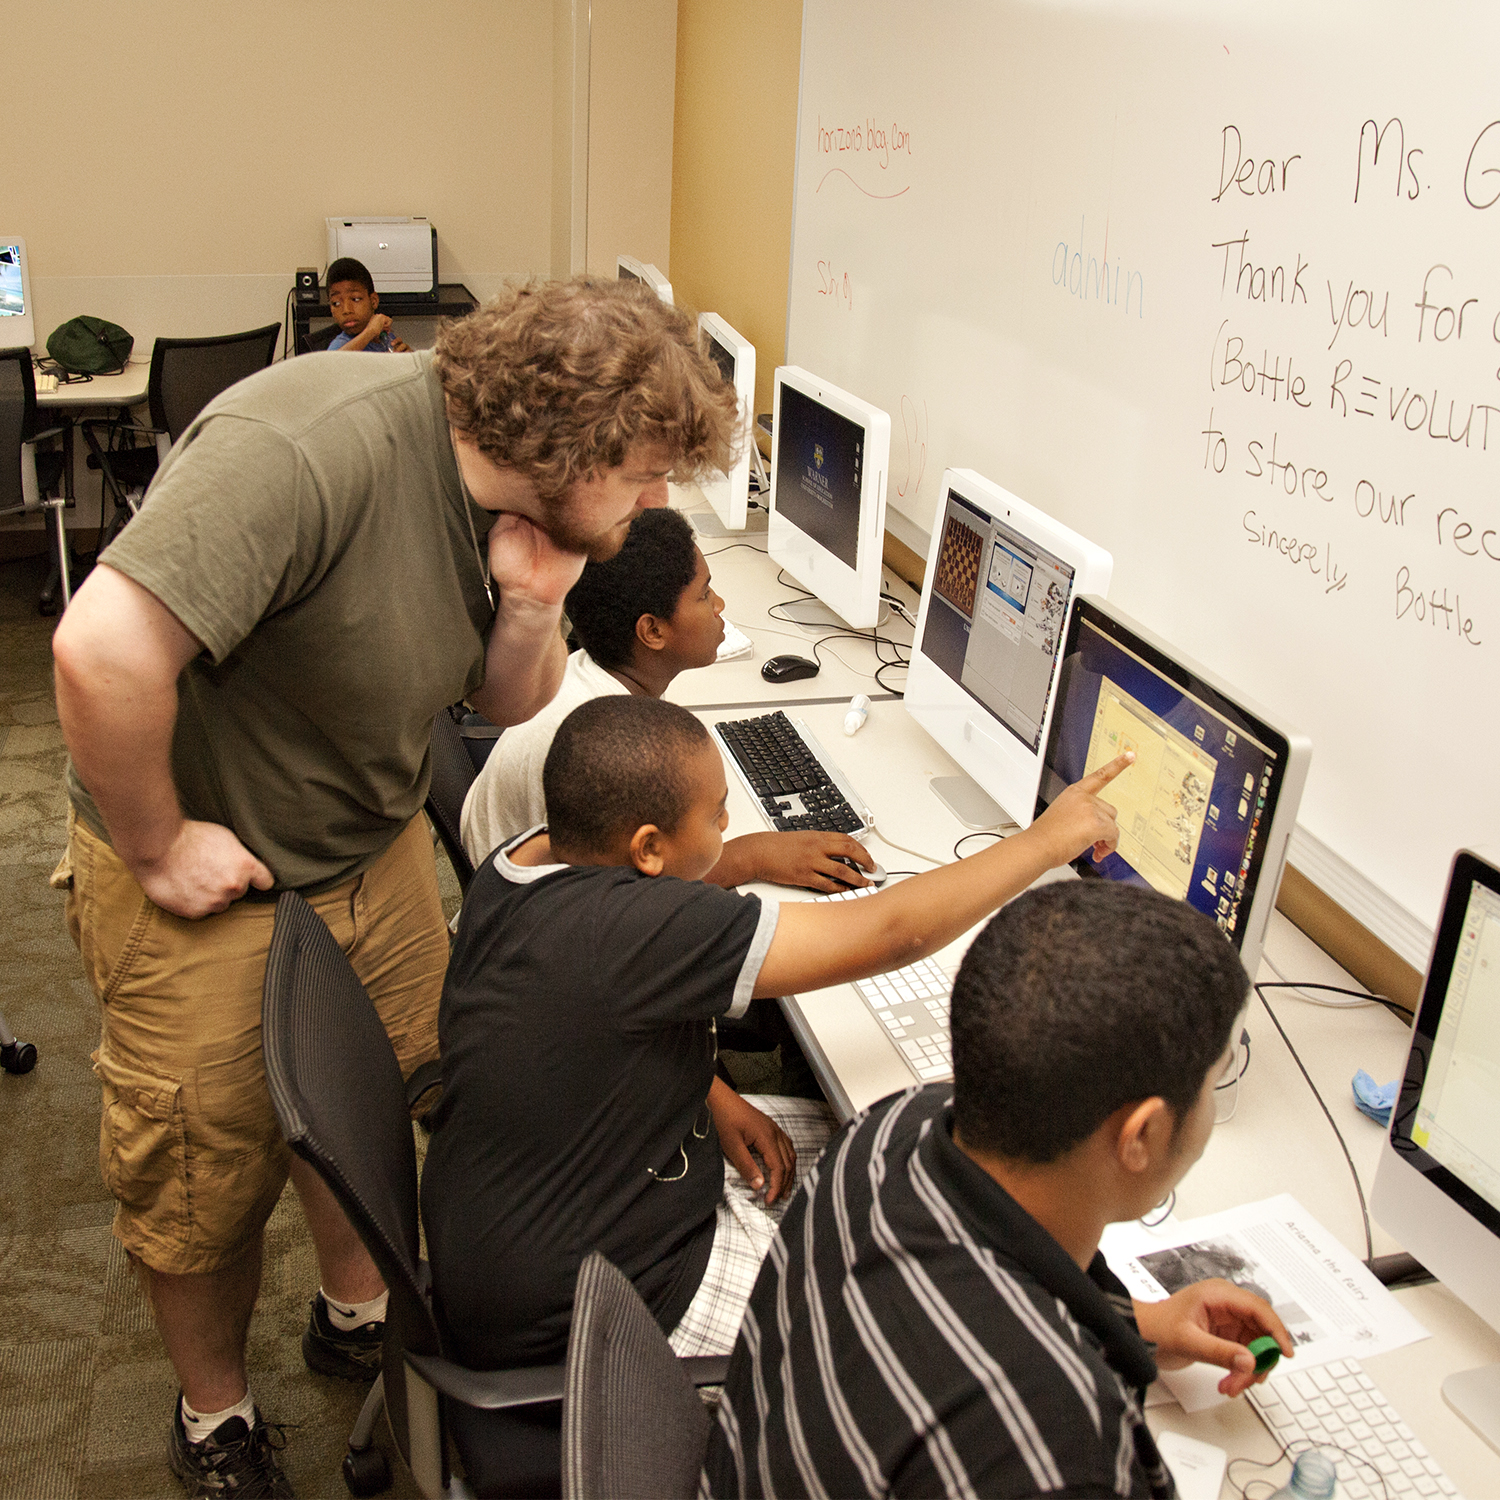 A teacher leans over to help a student working with others in the computer lab.